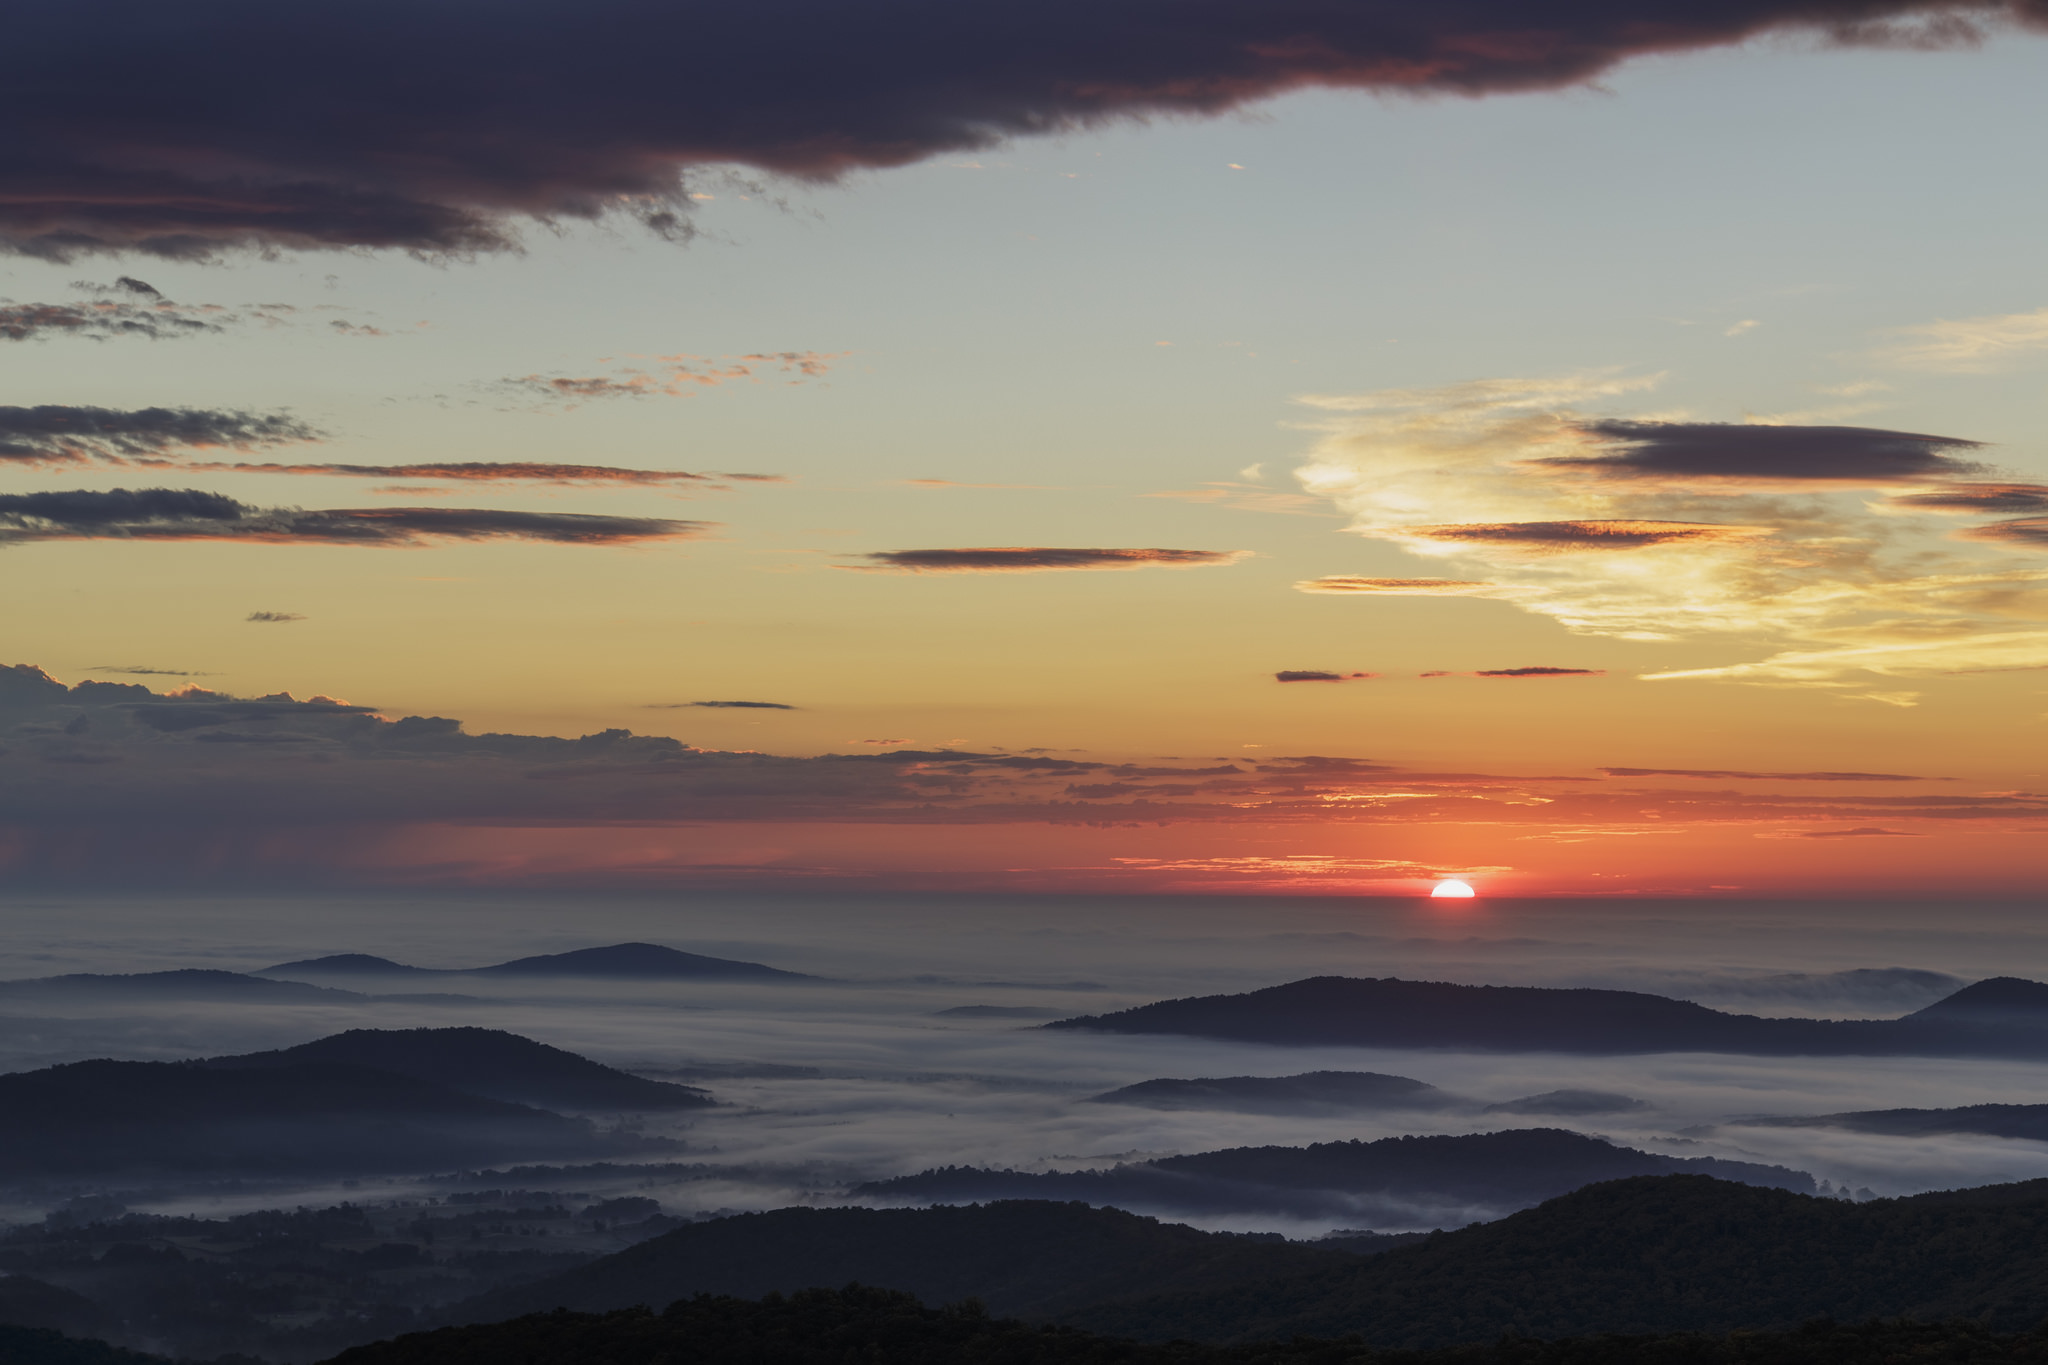 Shenandoah National Park Sunrise in Virginia